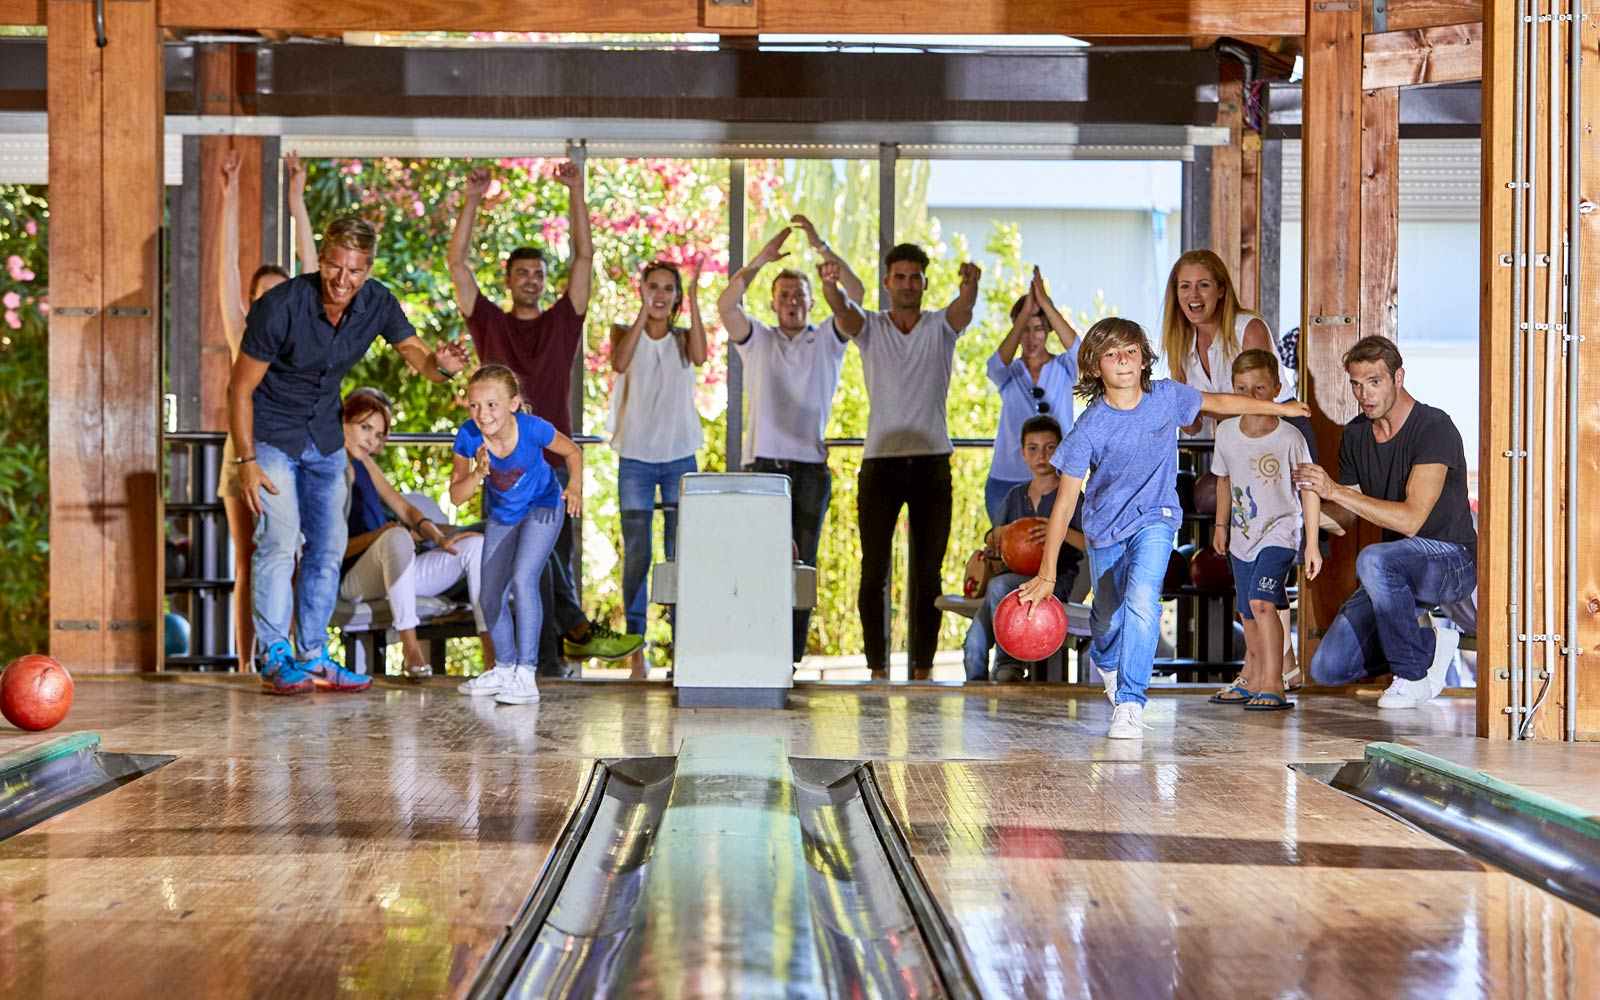 Bowling at Forte Village